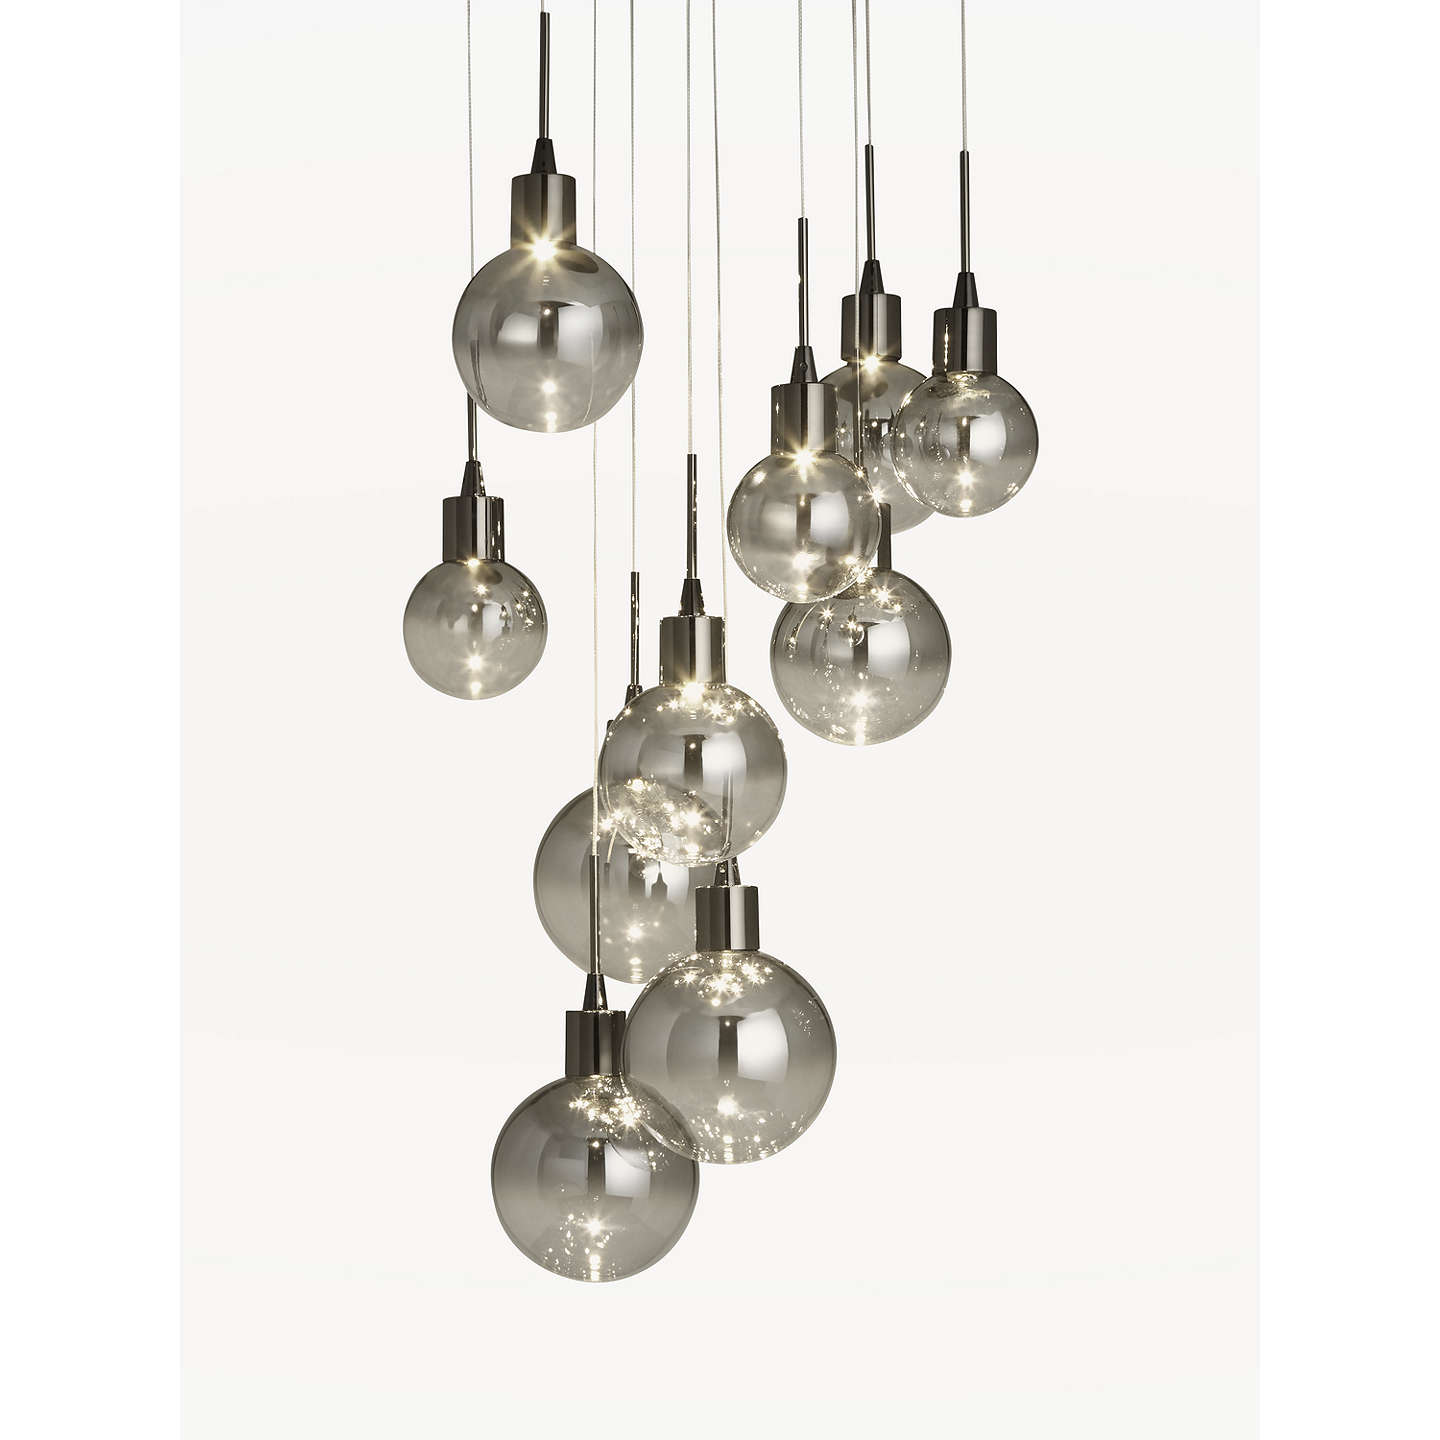 John lewis dano led ombre glass ceiling light 10 light smoke at buyjohn lewis dano led ombre glass ceiling light 10 light smoke online at johnlewis aloadofball Image collections